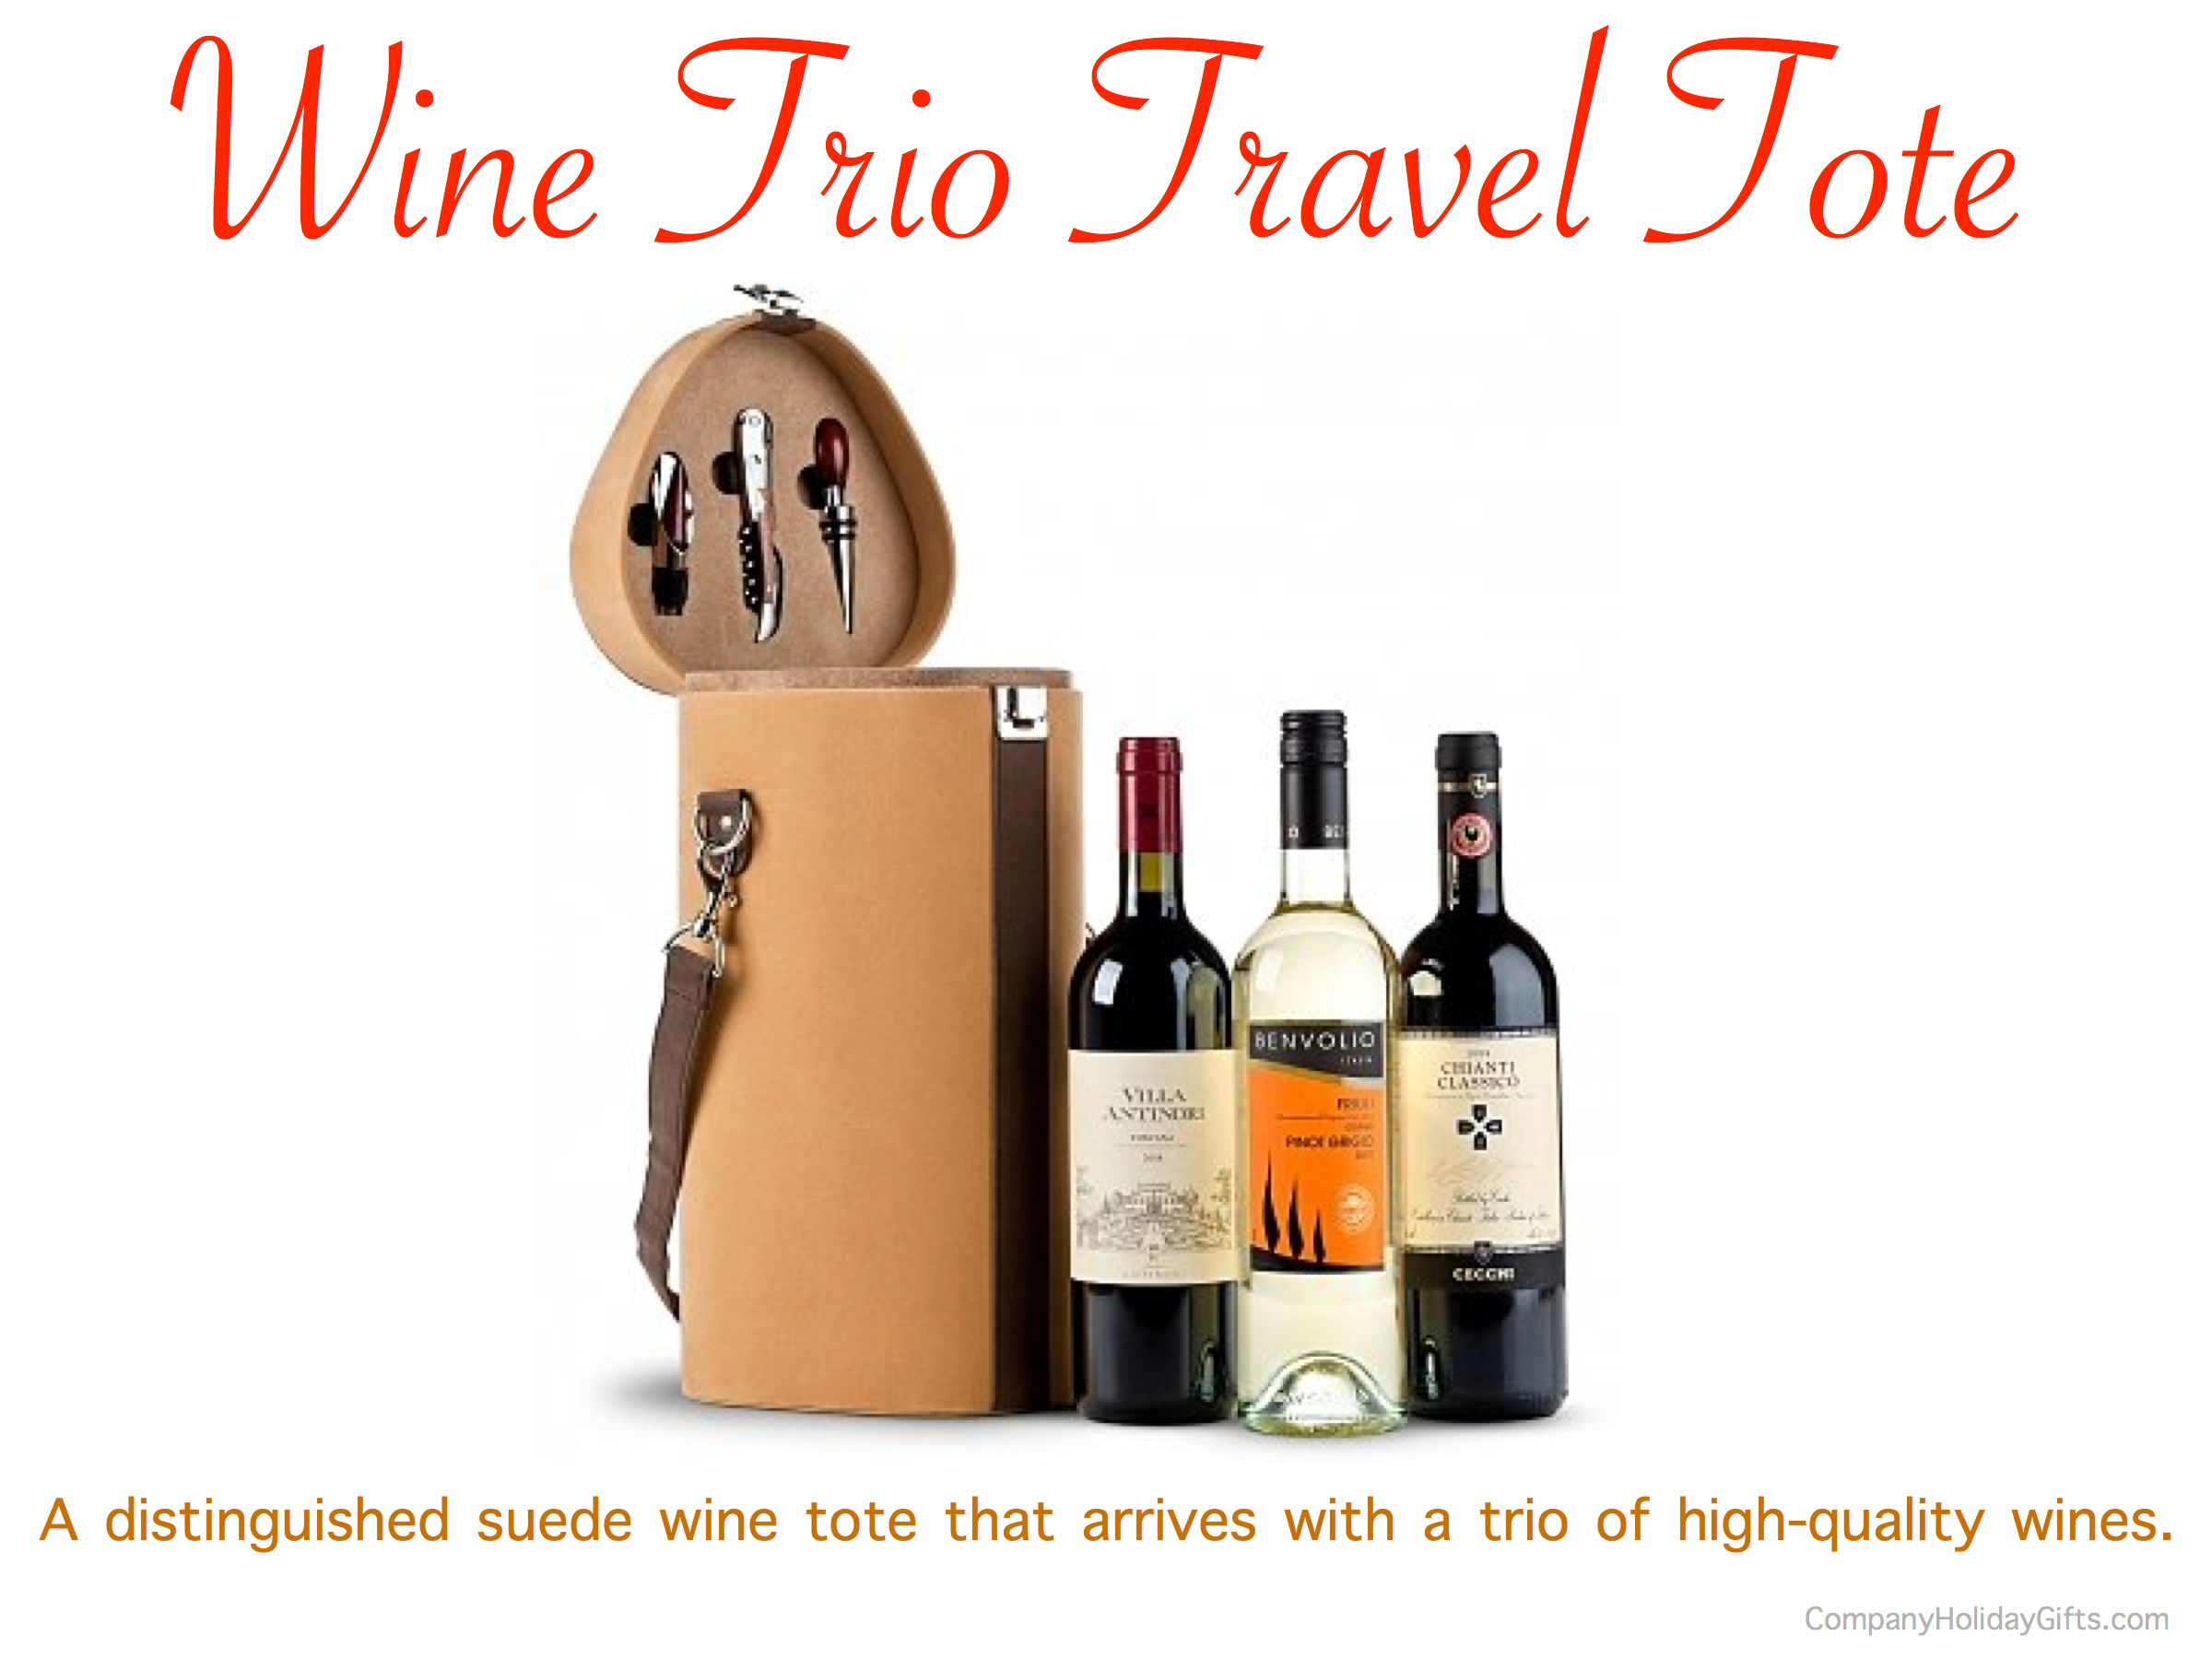 Wine Trio Travel Tote Holiday Gift, 20 Best Company Holiday Gift Ideas Under $100.00